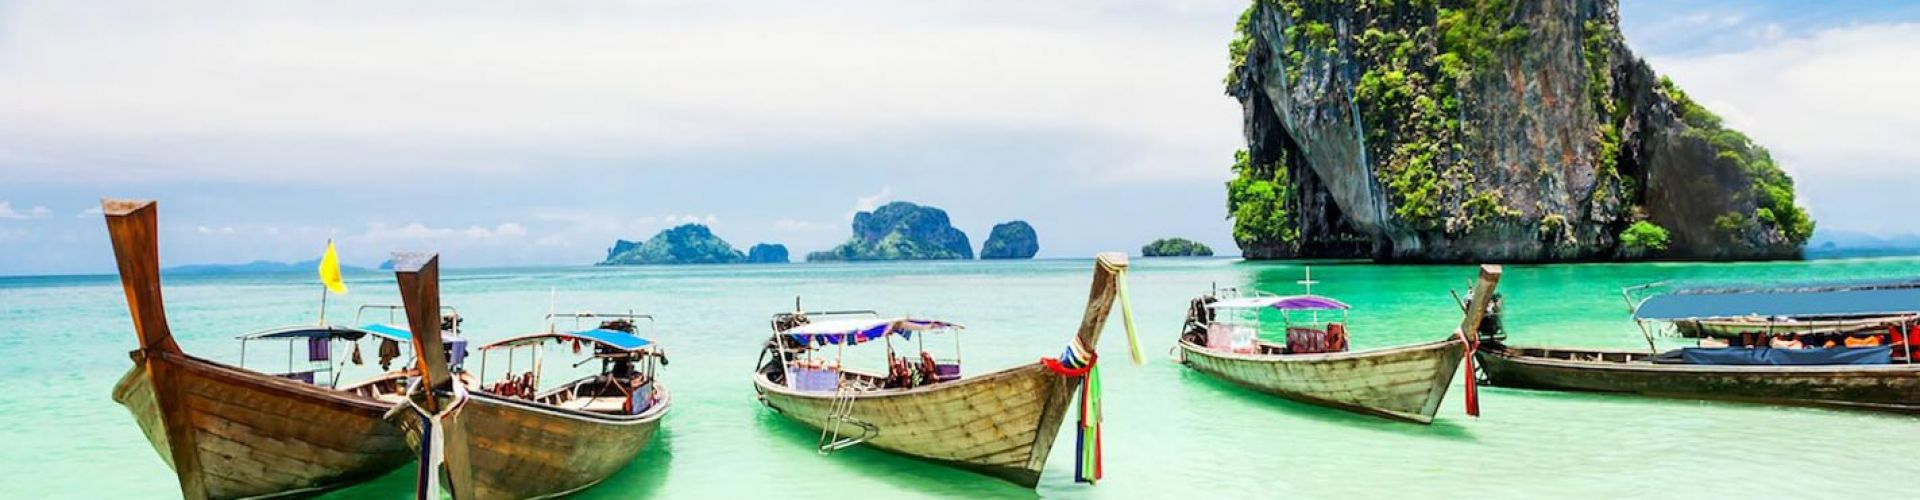 Destinations in Phuket